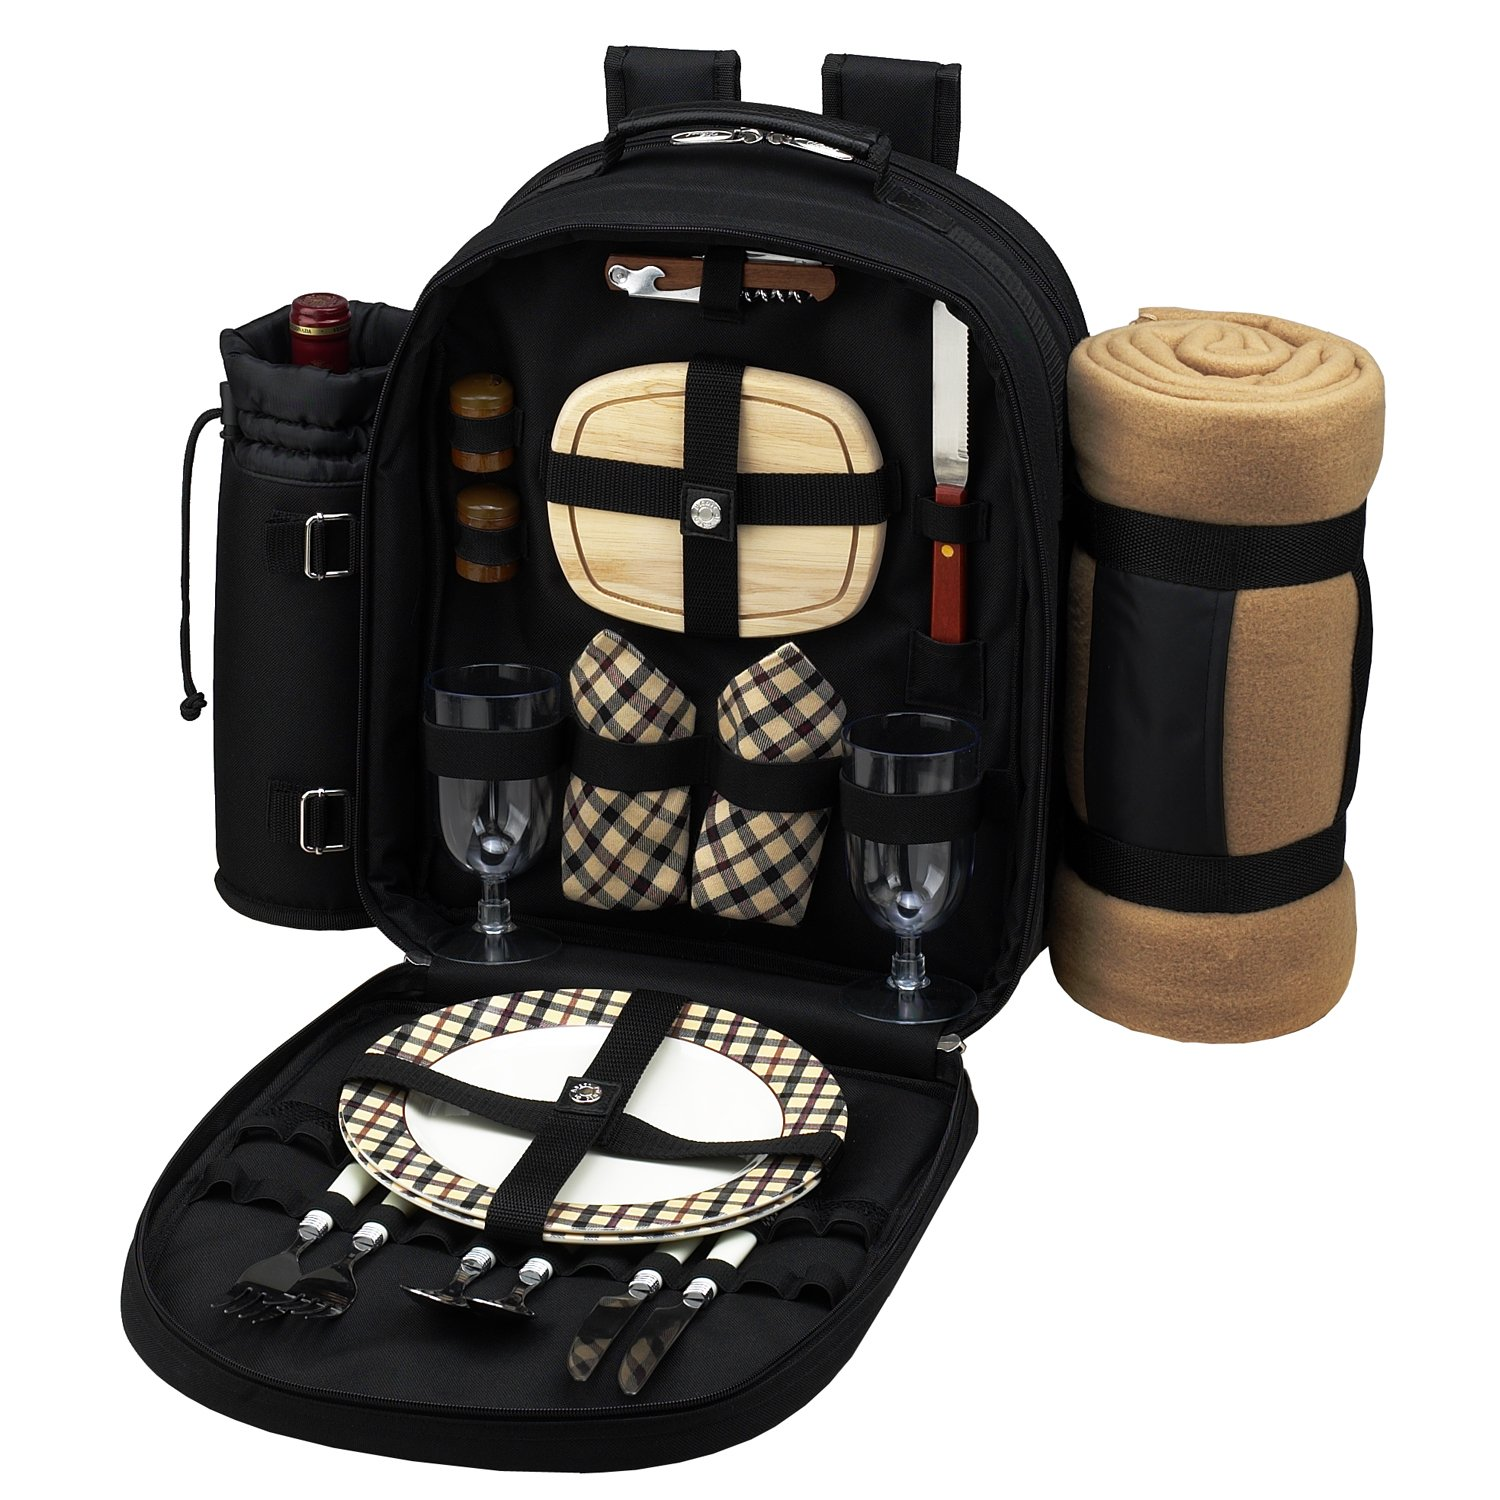 Picnic at Ascot - Deluxe Equipped 2 Person Picnic Backpack with Cooler, Insulated Wine Holder & Blanket - Navy 080X-BLB